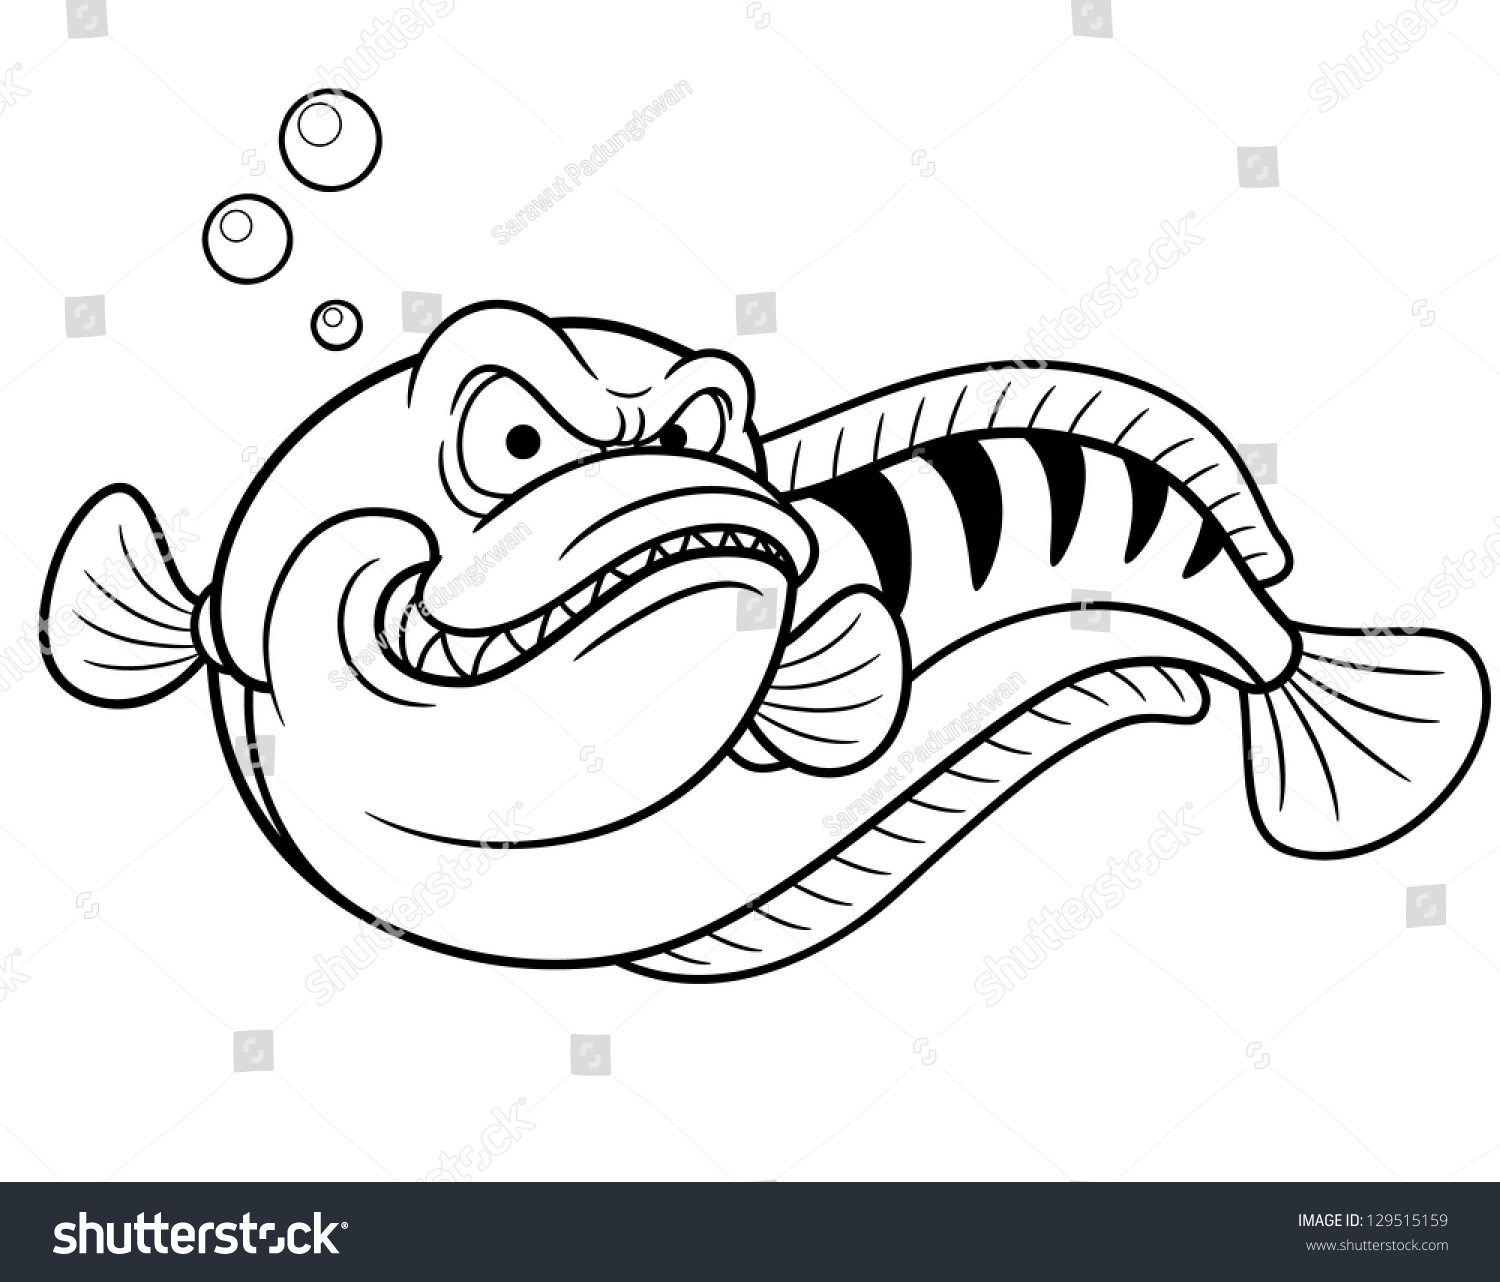 Vector Illustration Giant Snakehead Fish Coloring Stock ...